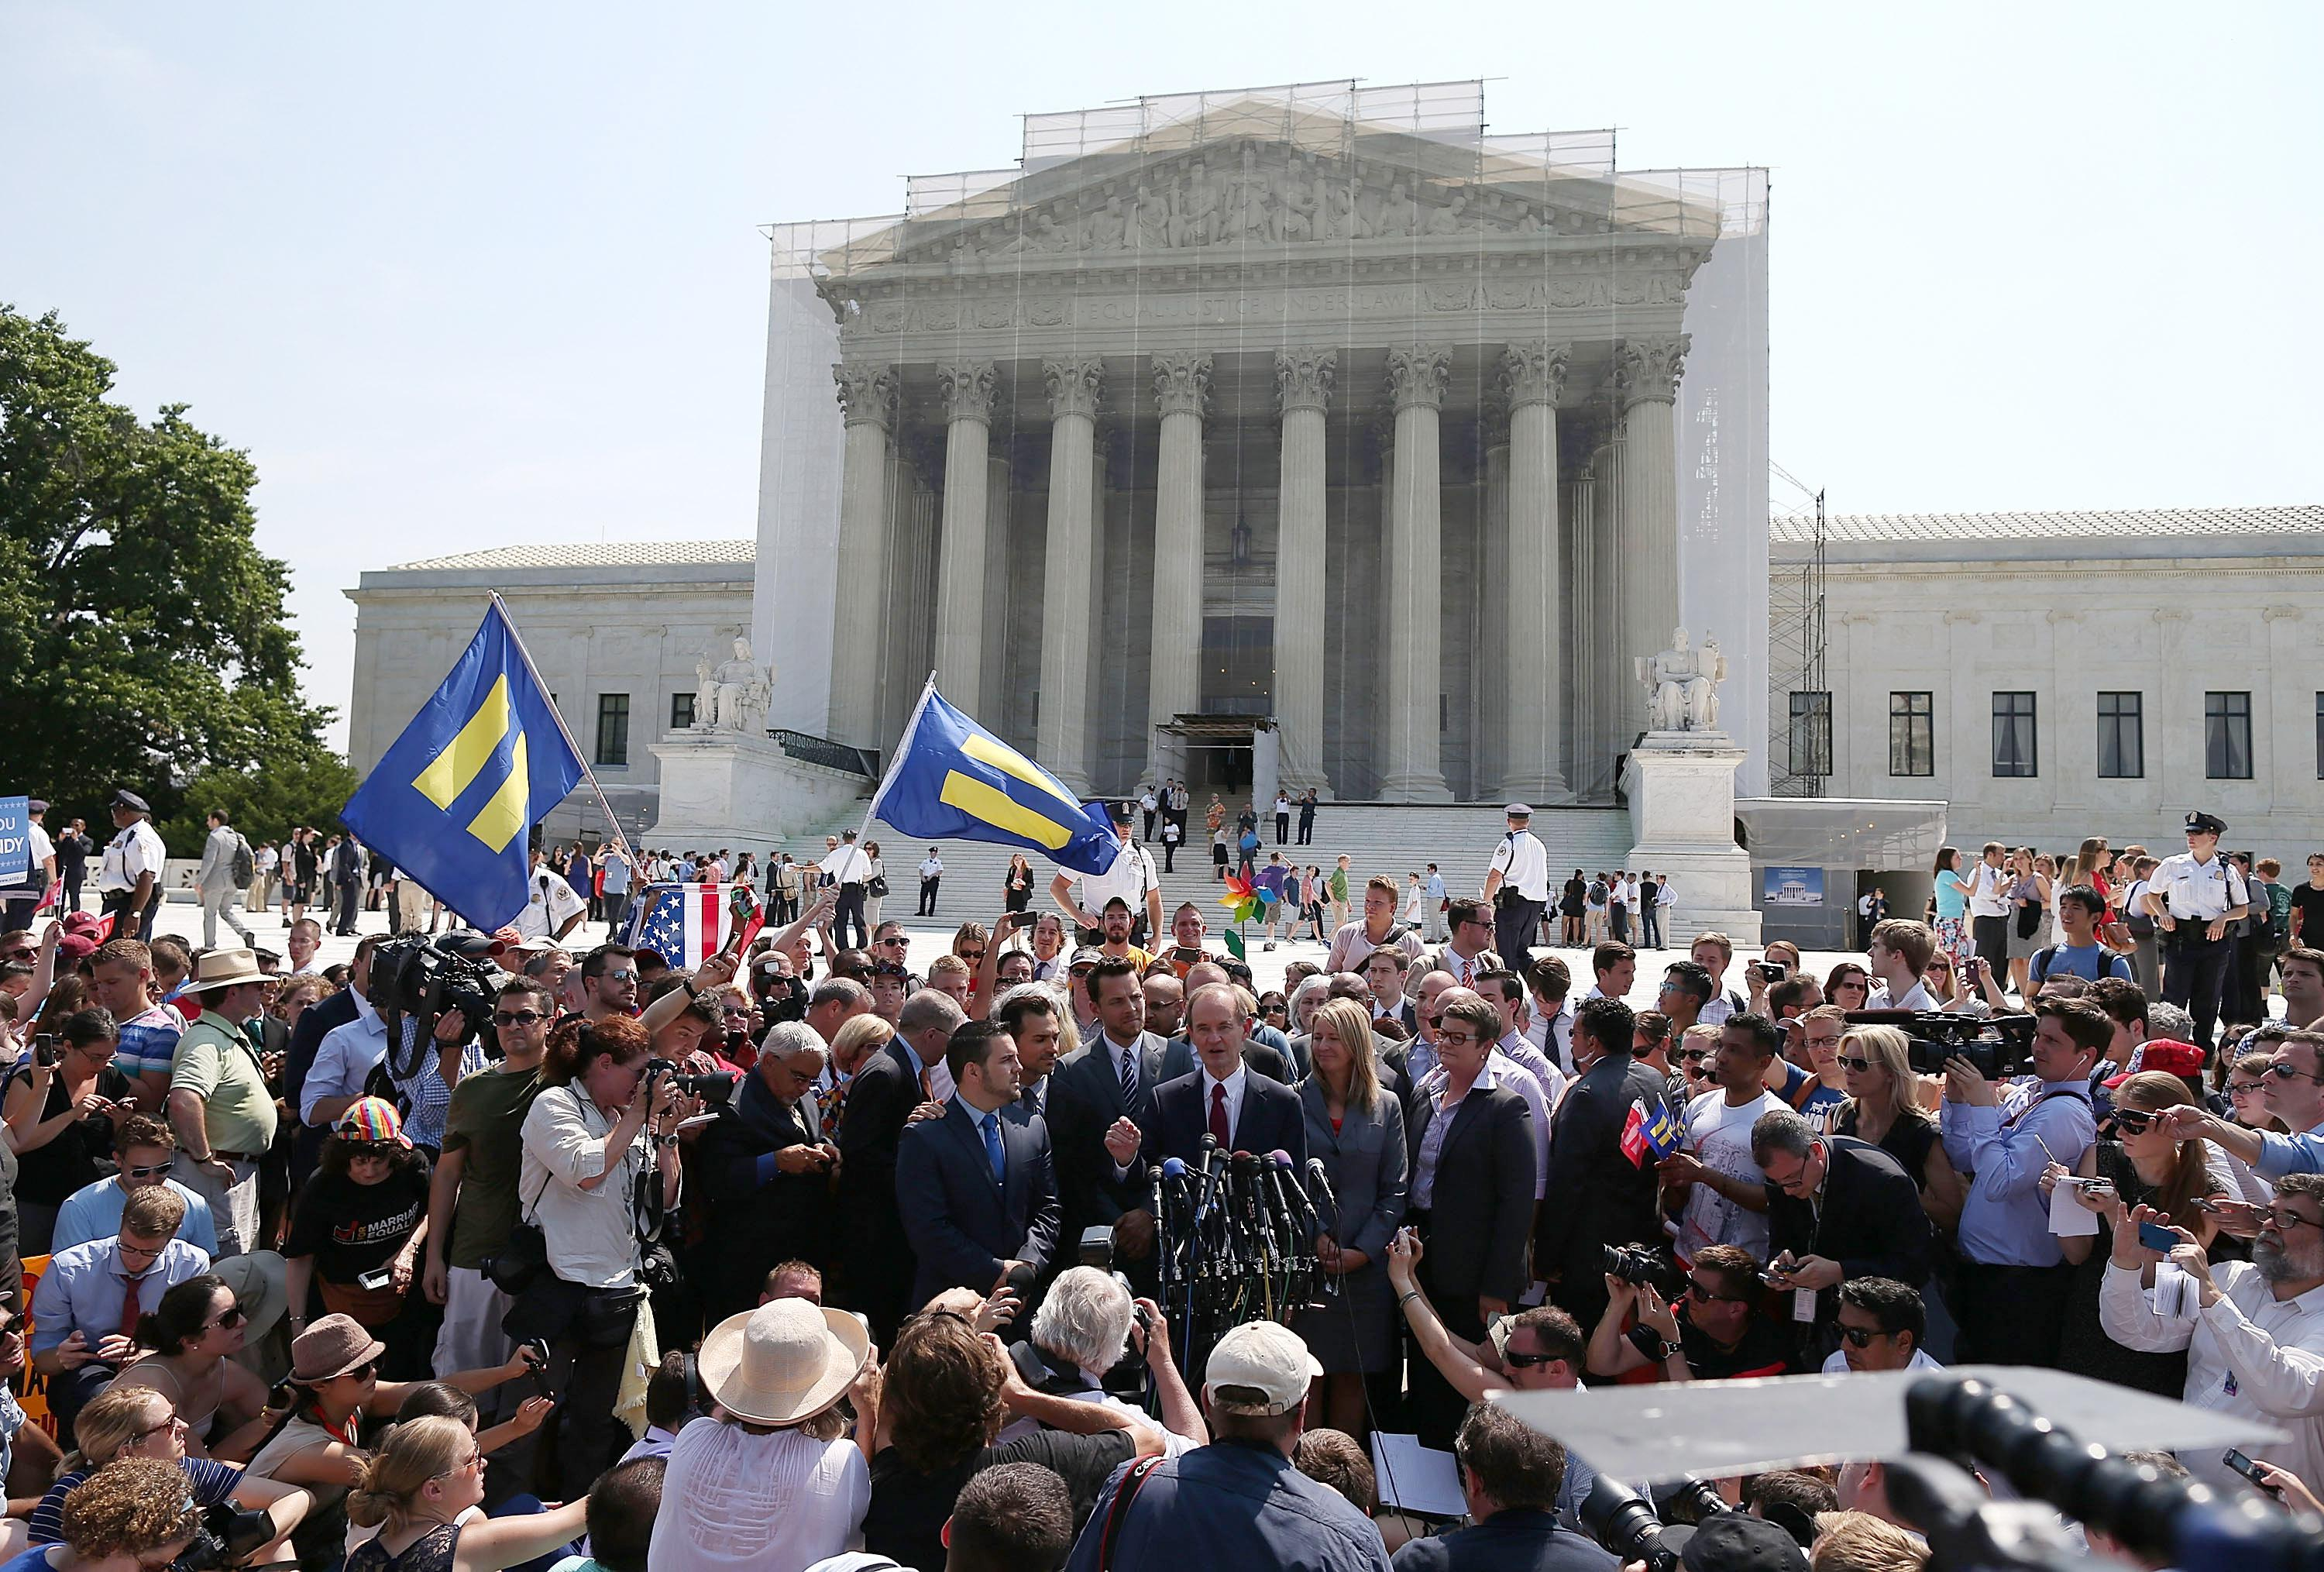 The crowd at the U.S. Supreme Court on June 26, 2013, when the high court struck down the Defense of Marriage Act.